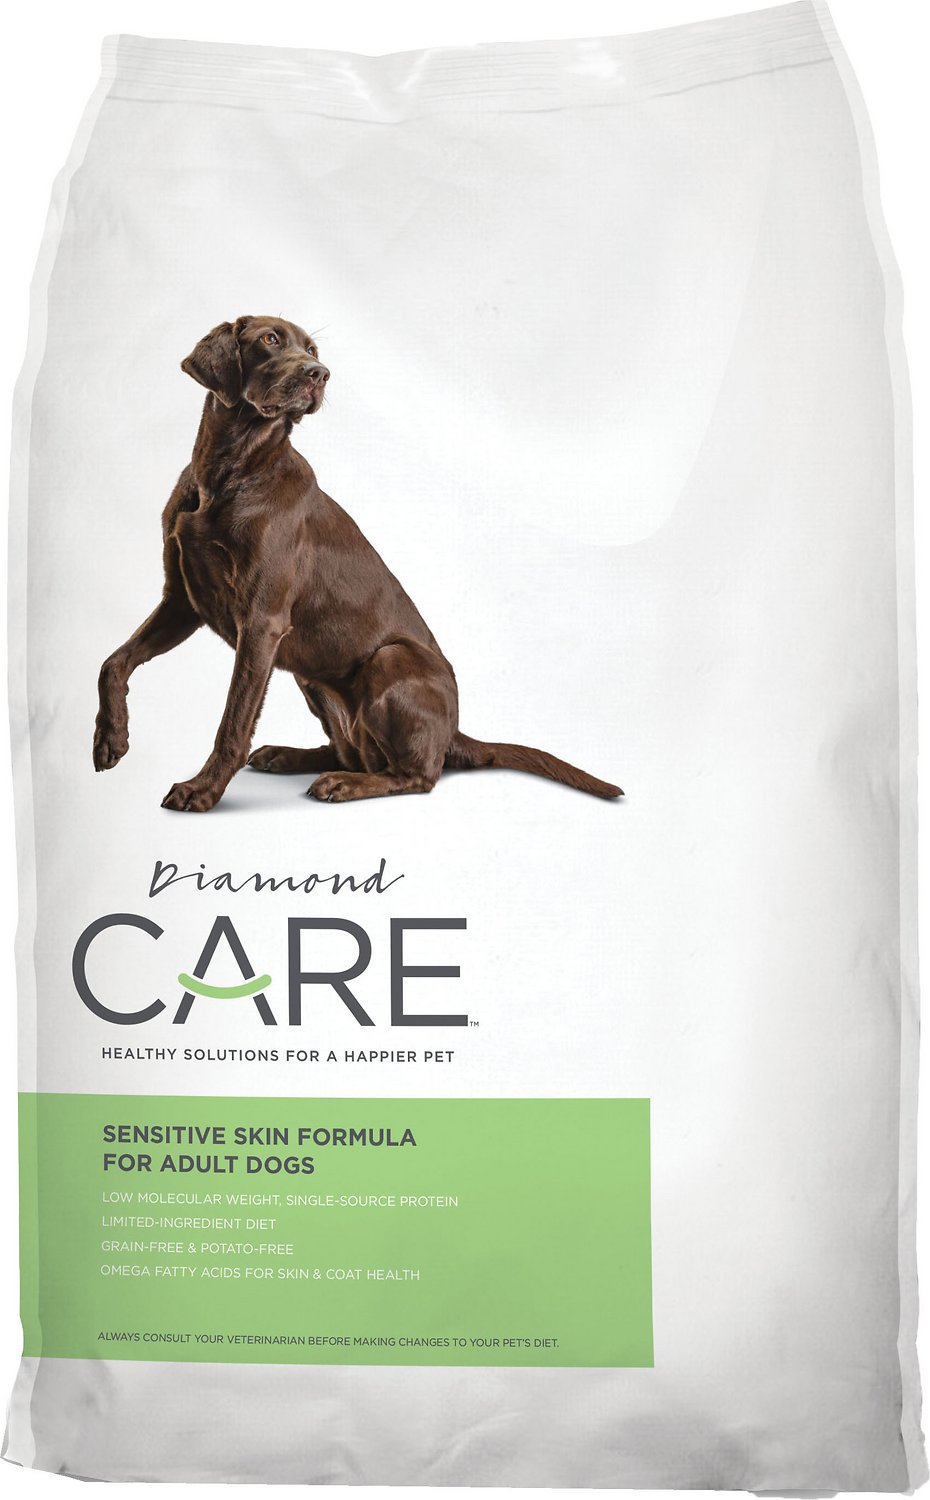 Diamond Care Sensitive Skin Formula Adult Limited Ingredient Grain-Free Dry Dog Food, 8-lb bag